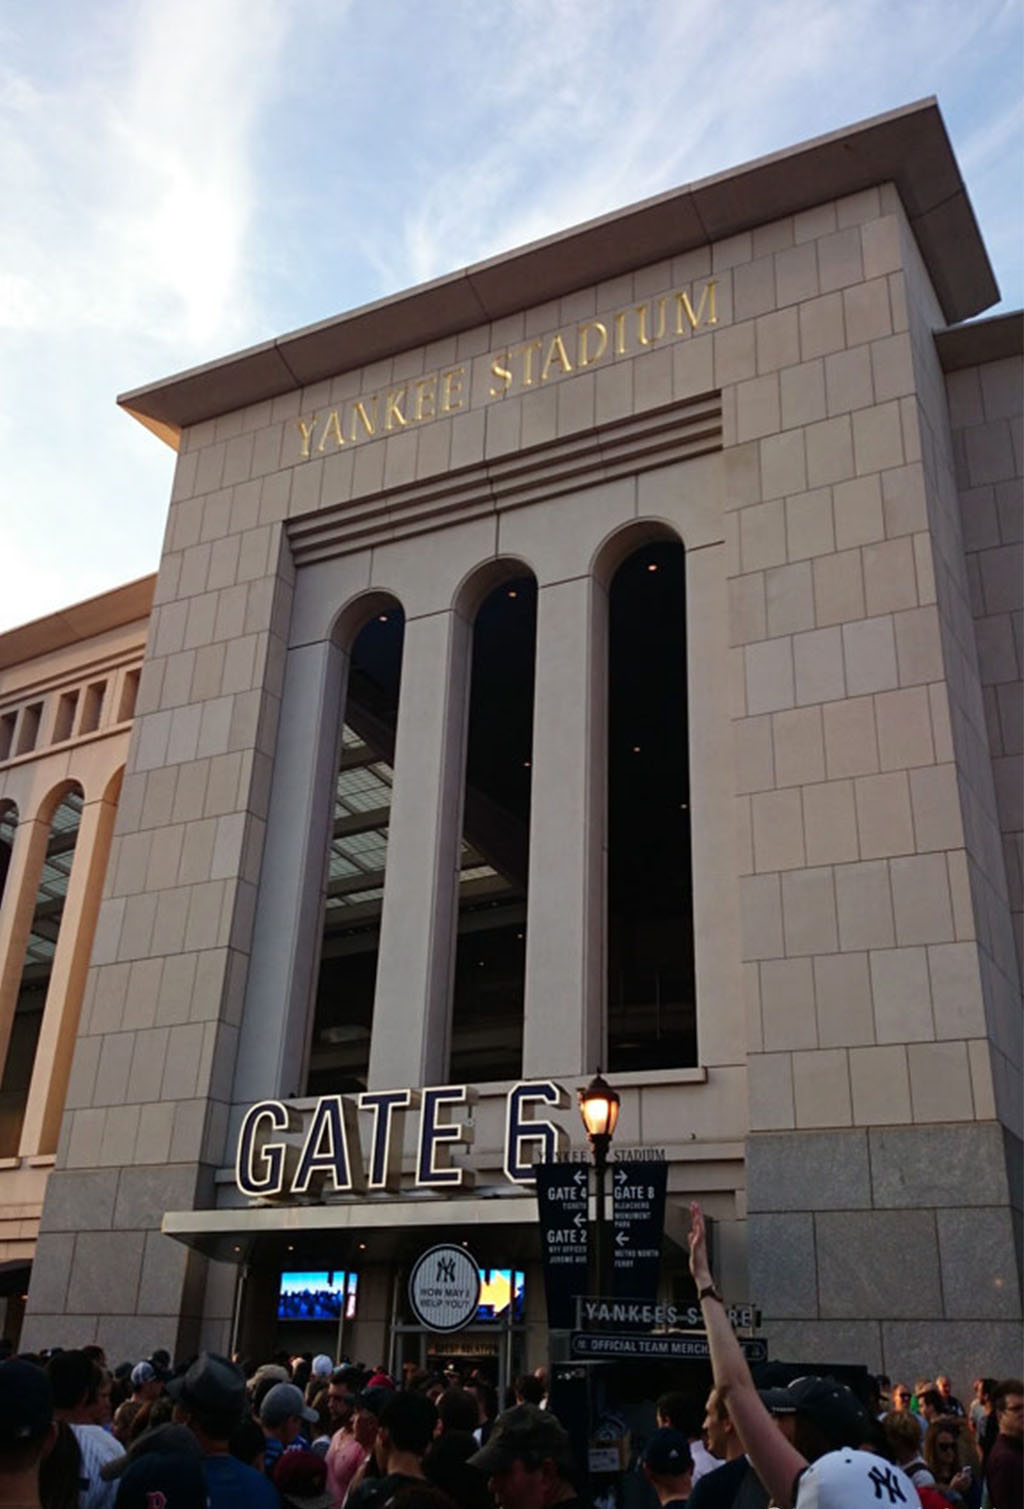 Voyage, mes incontournables pour visiter new-york, match de baseball, yankees, yankee stadium